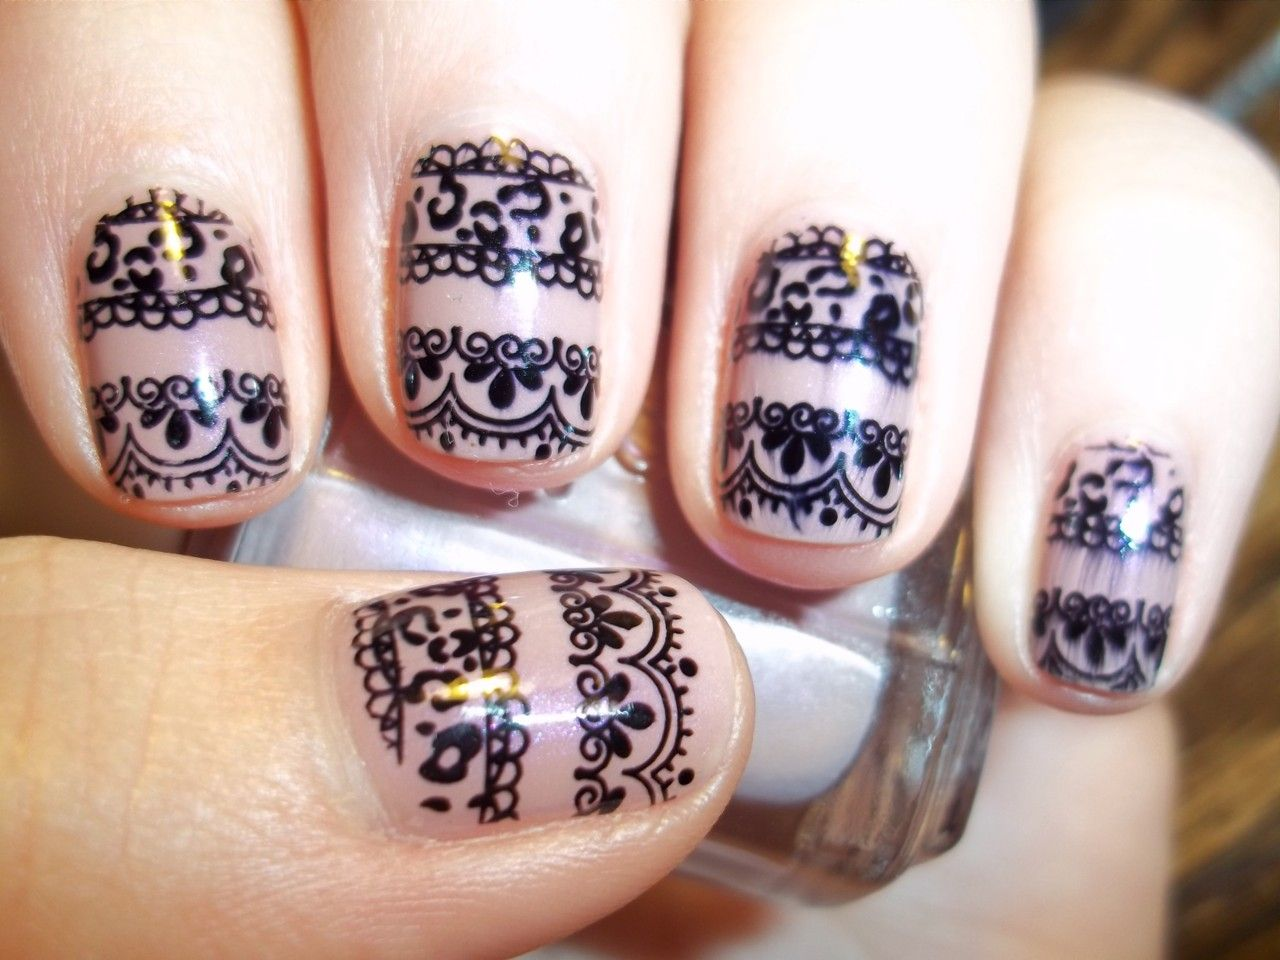 Dorable Nail Stamp Designs Photo - Nail Art Ideas - morihati.com